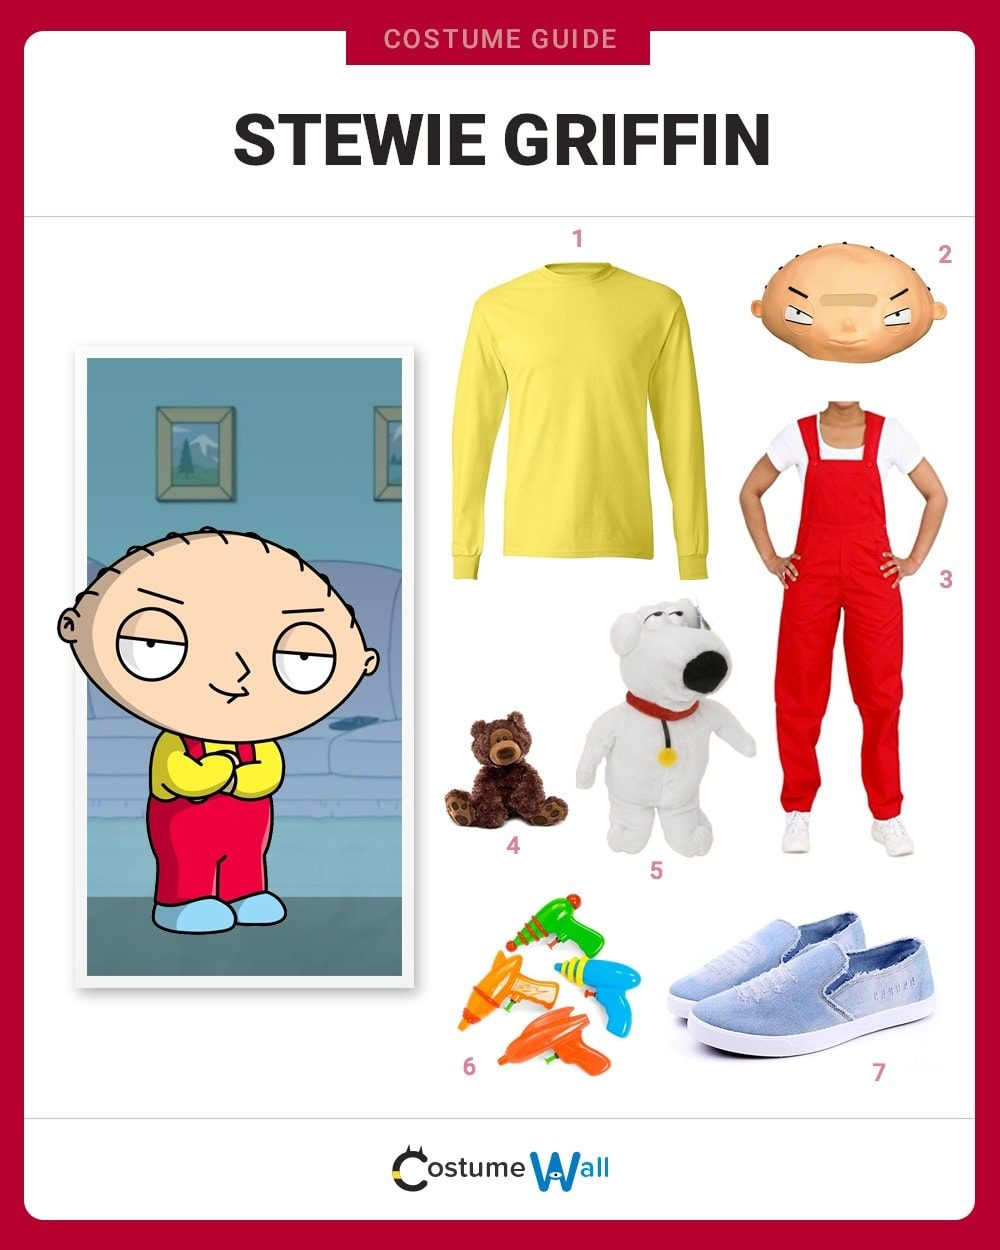 Stewie Griffin Costume Guide